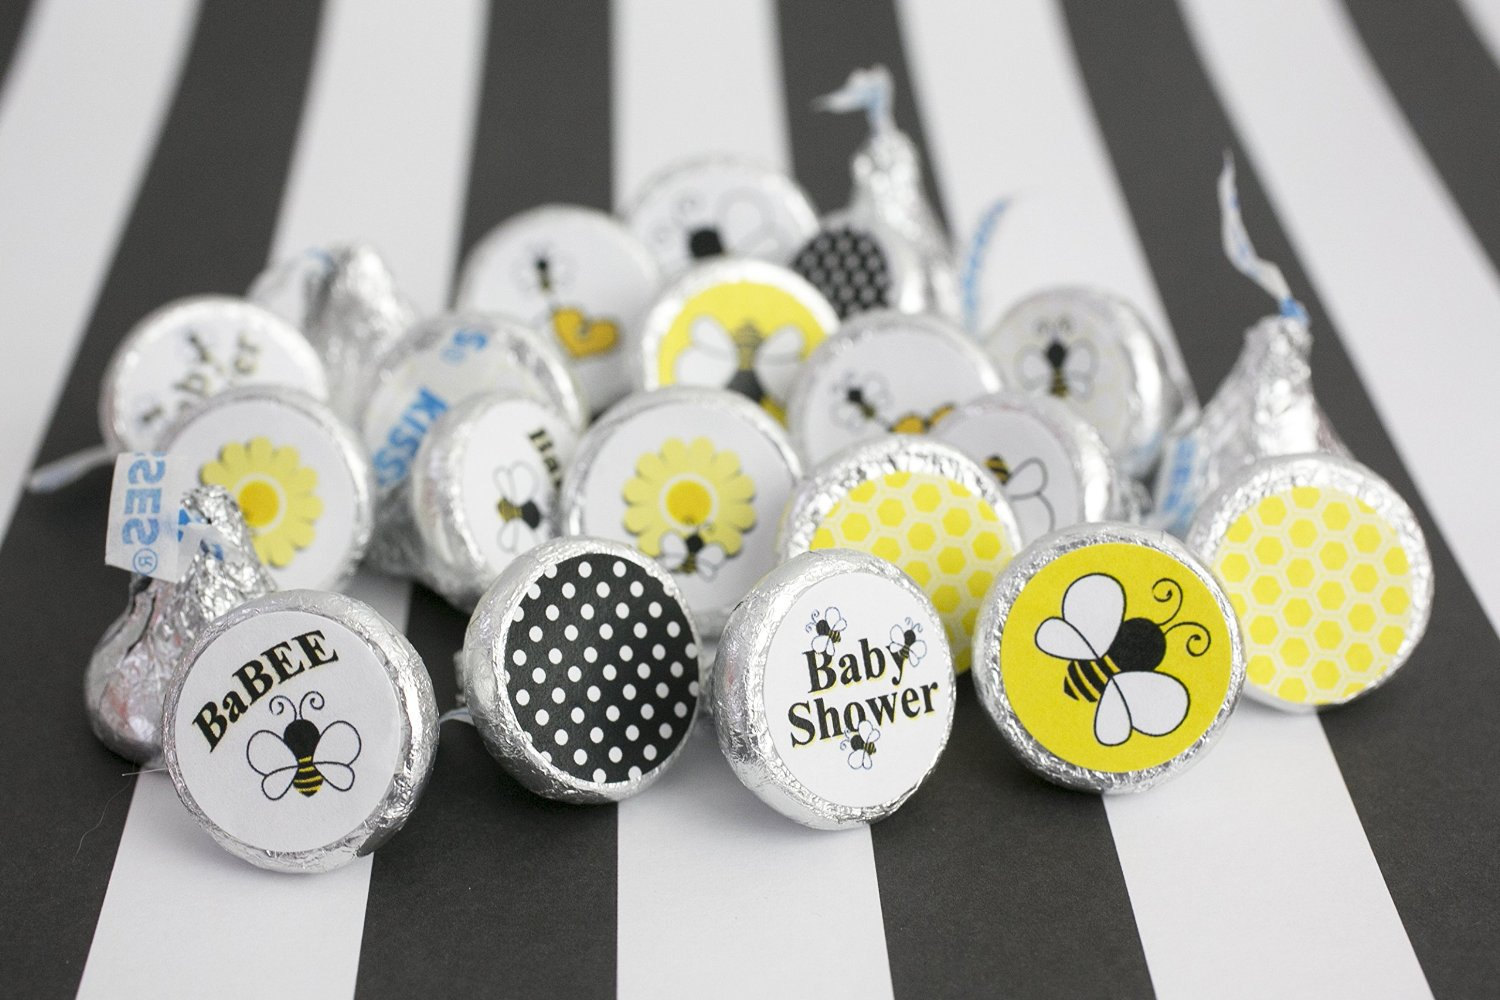 Bumble Bee Baby Shower Favor Decoration Stickers for Hershey Kisses, Envelope Seals, & Miniature Candies